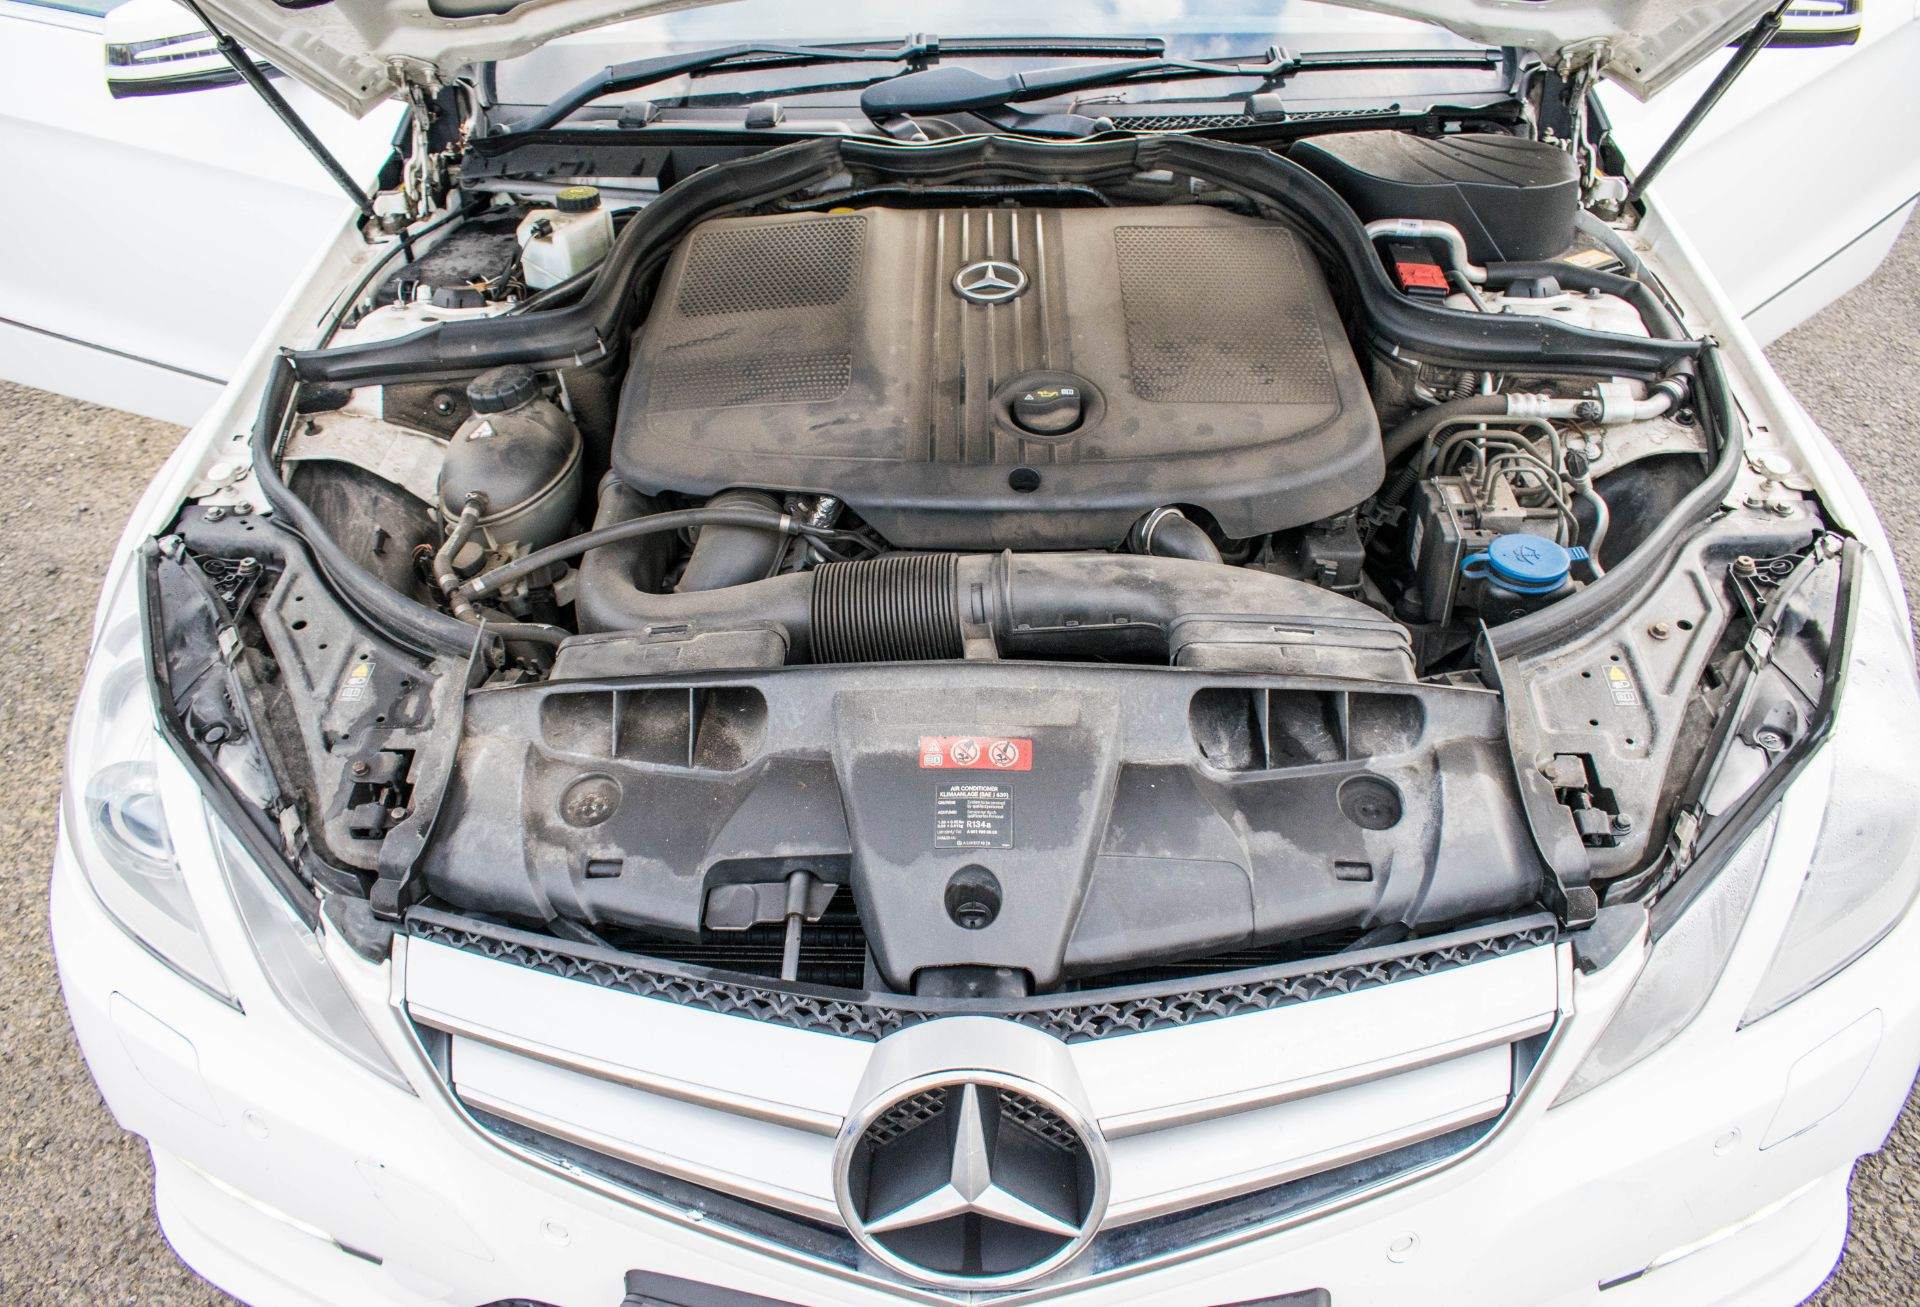 Lot 71 - Mercedes Benz E250 sport CDI diesel convertible car Registration number: WP12 OLO Date of